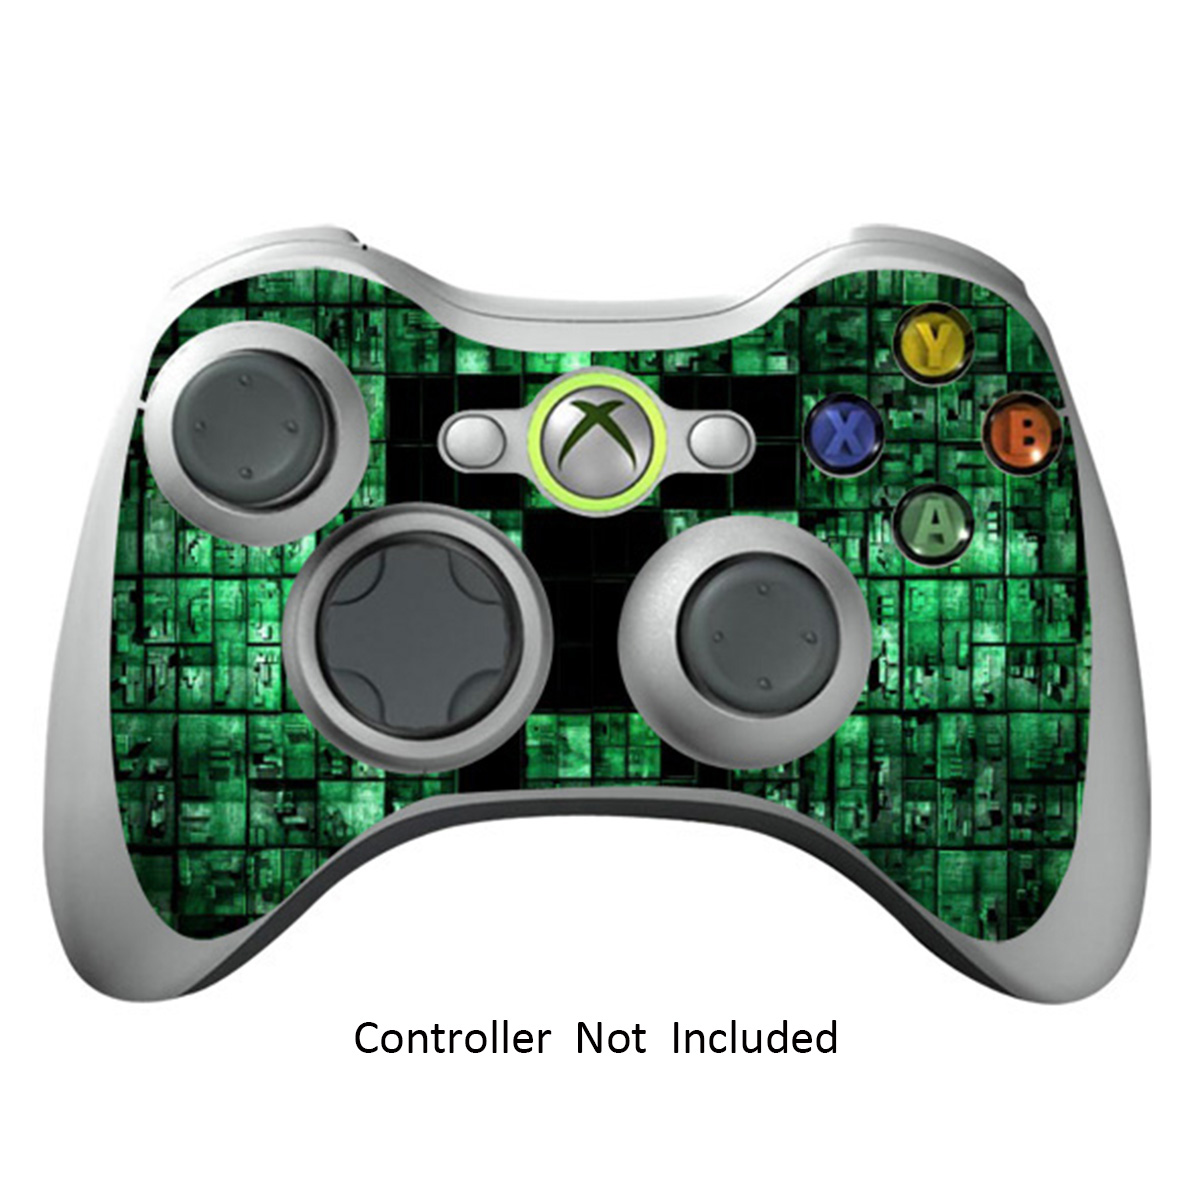 Skin Stickers for Xbox 360 Controller - Vinyl High Gloss Sticker for X360 Slim Wired Wireless Game Controllers - Protectors Stickers Controller Decal - Green Digicamo